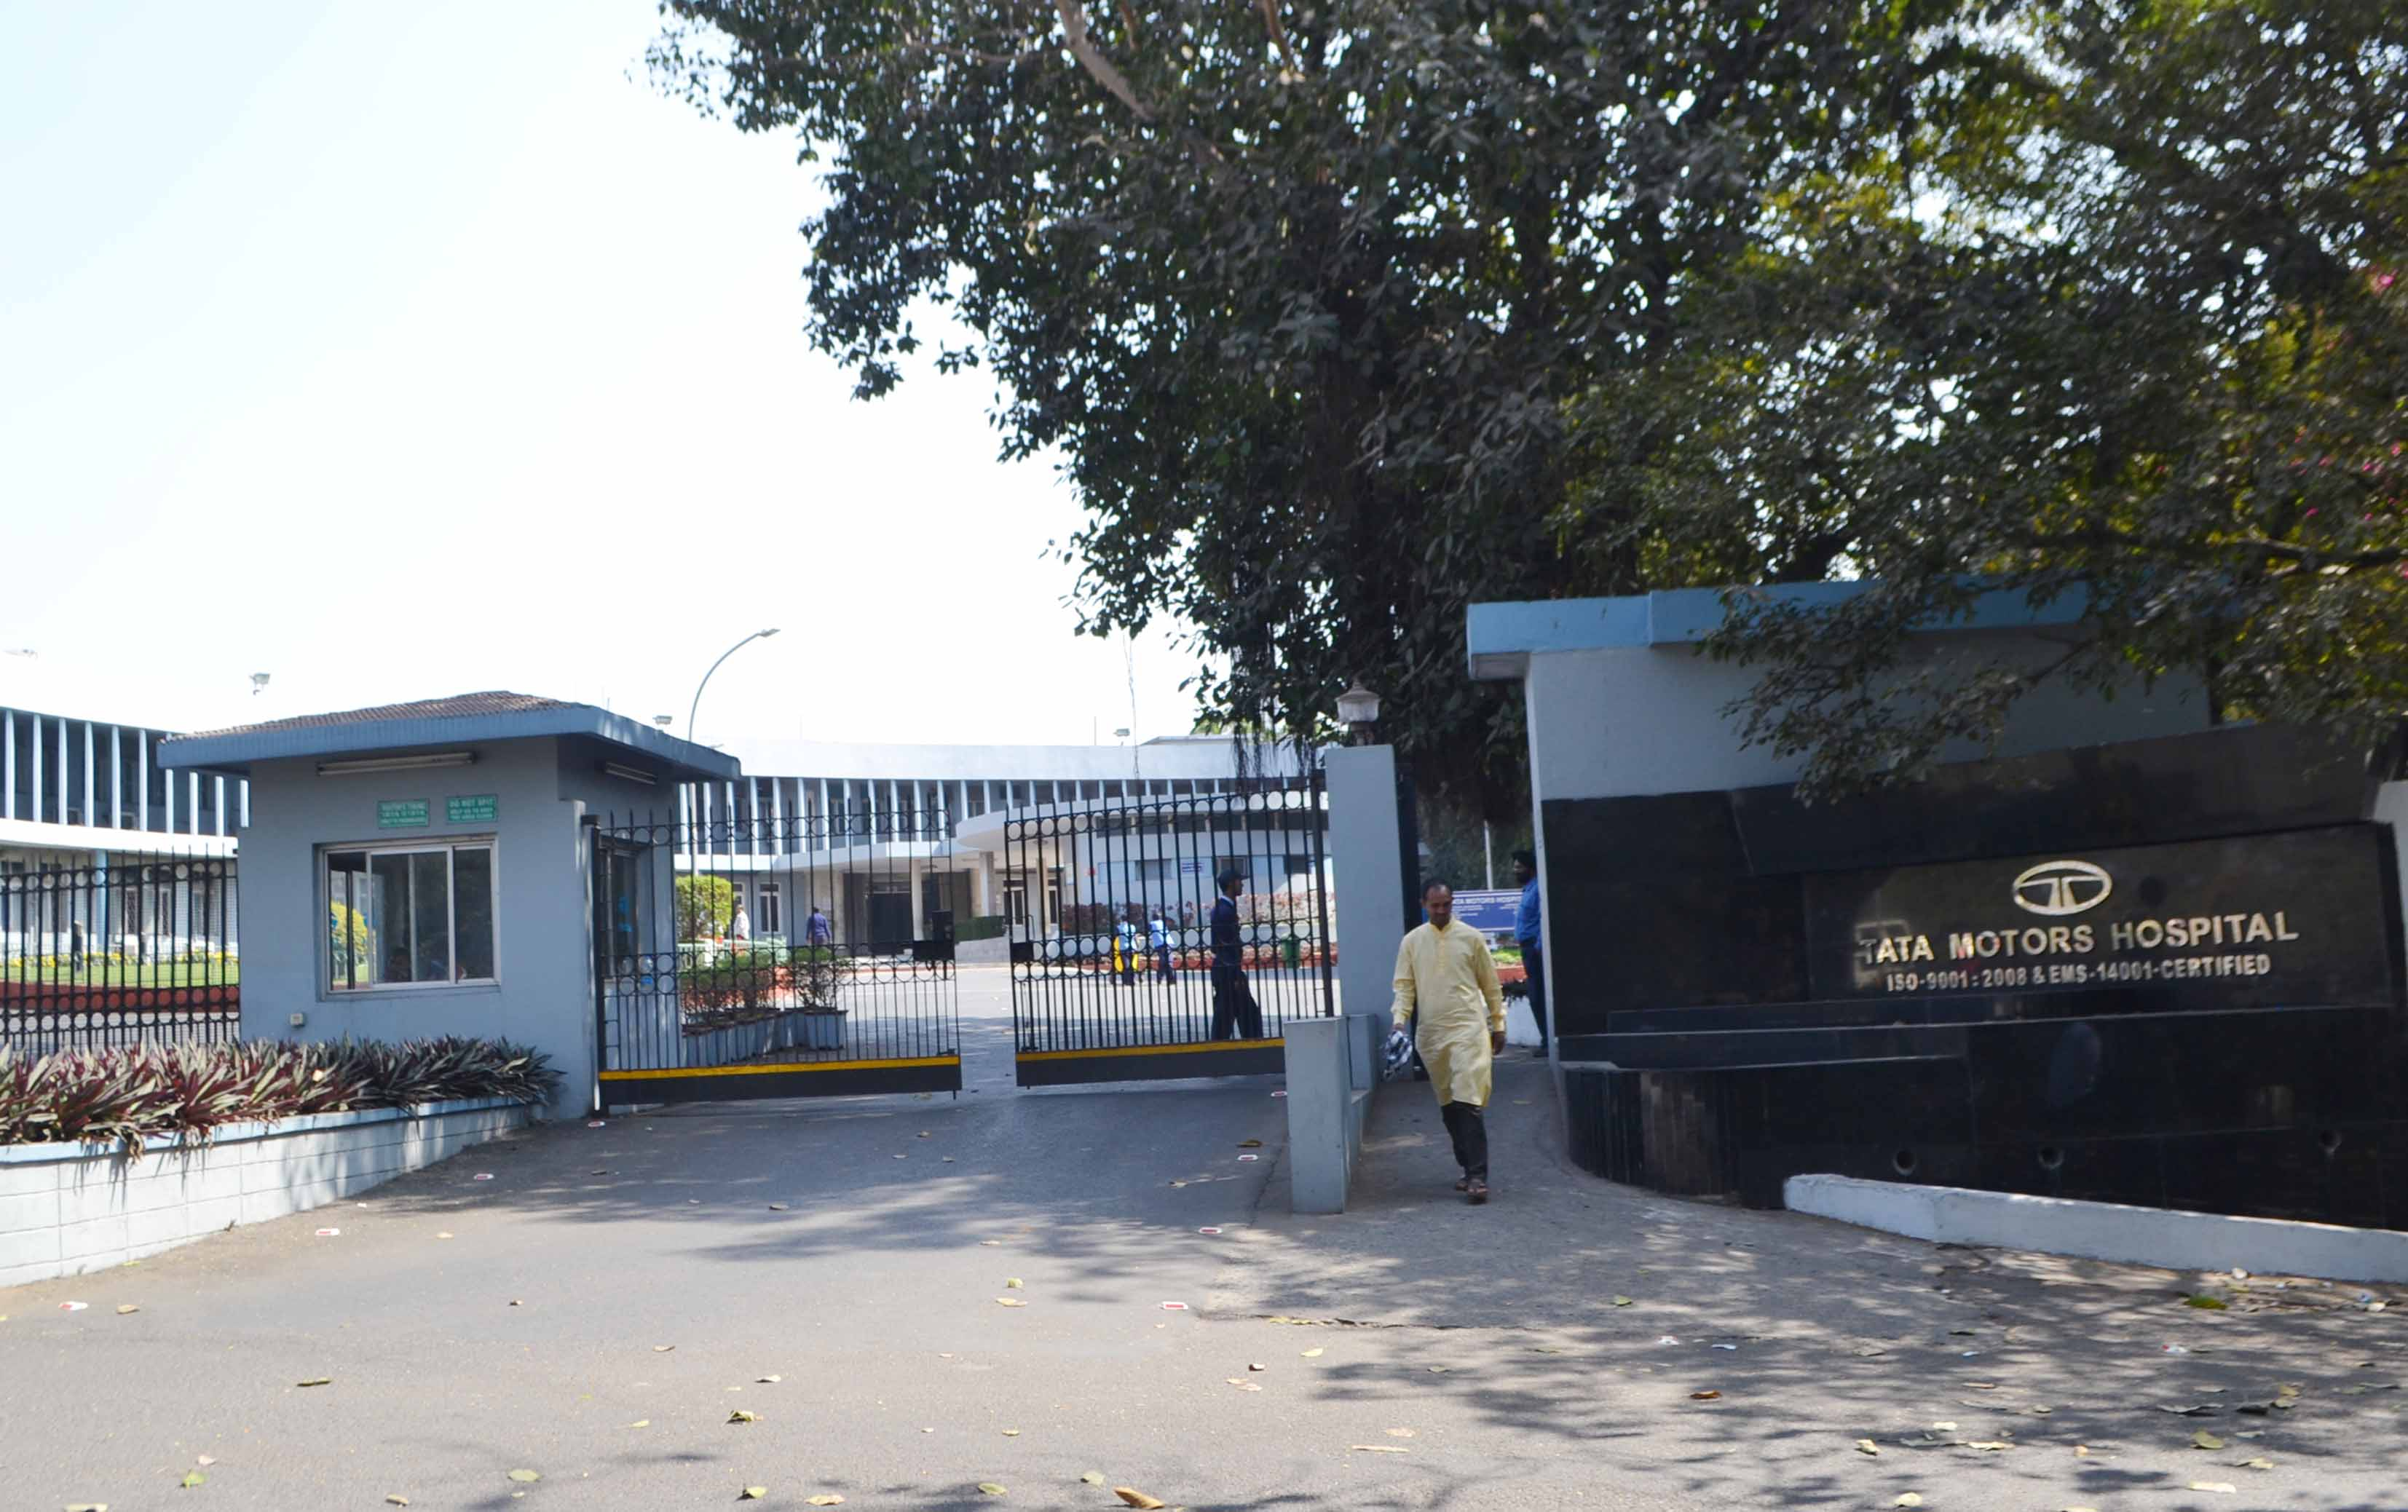 Tata Motors Hospital in Telco, Jamshedpur, where a patient tested positive for the coronavirus. As many as 15 medics, including doctors and nurses of the hospital, have been put under quarantine on Sunday